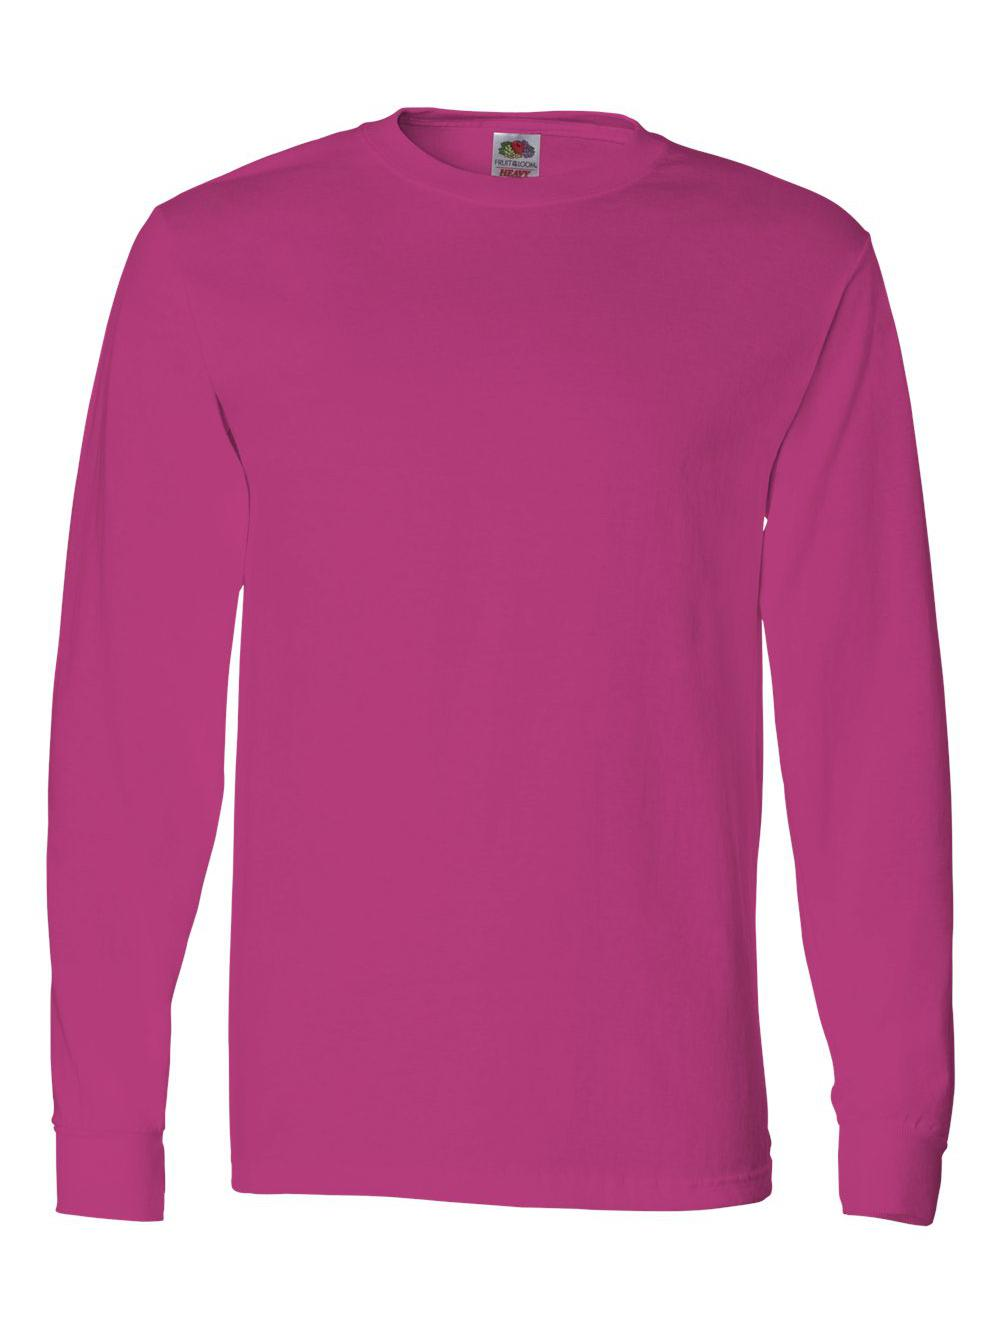 Fruit-of-the-Loom-HD-Cotton-Long-Sleeve-T-Shirt-4930R thumbnail 30